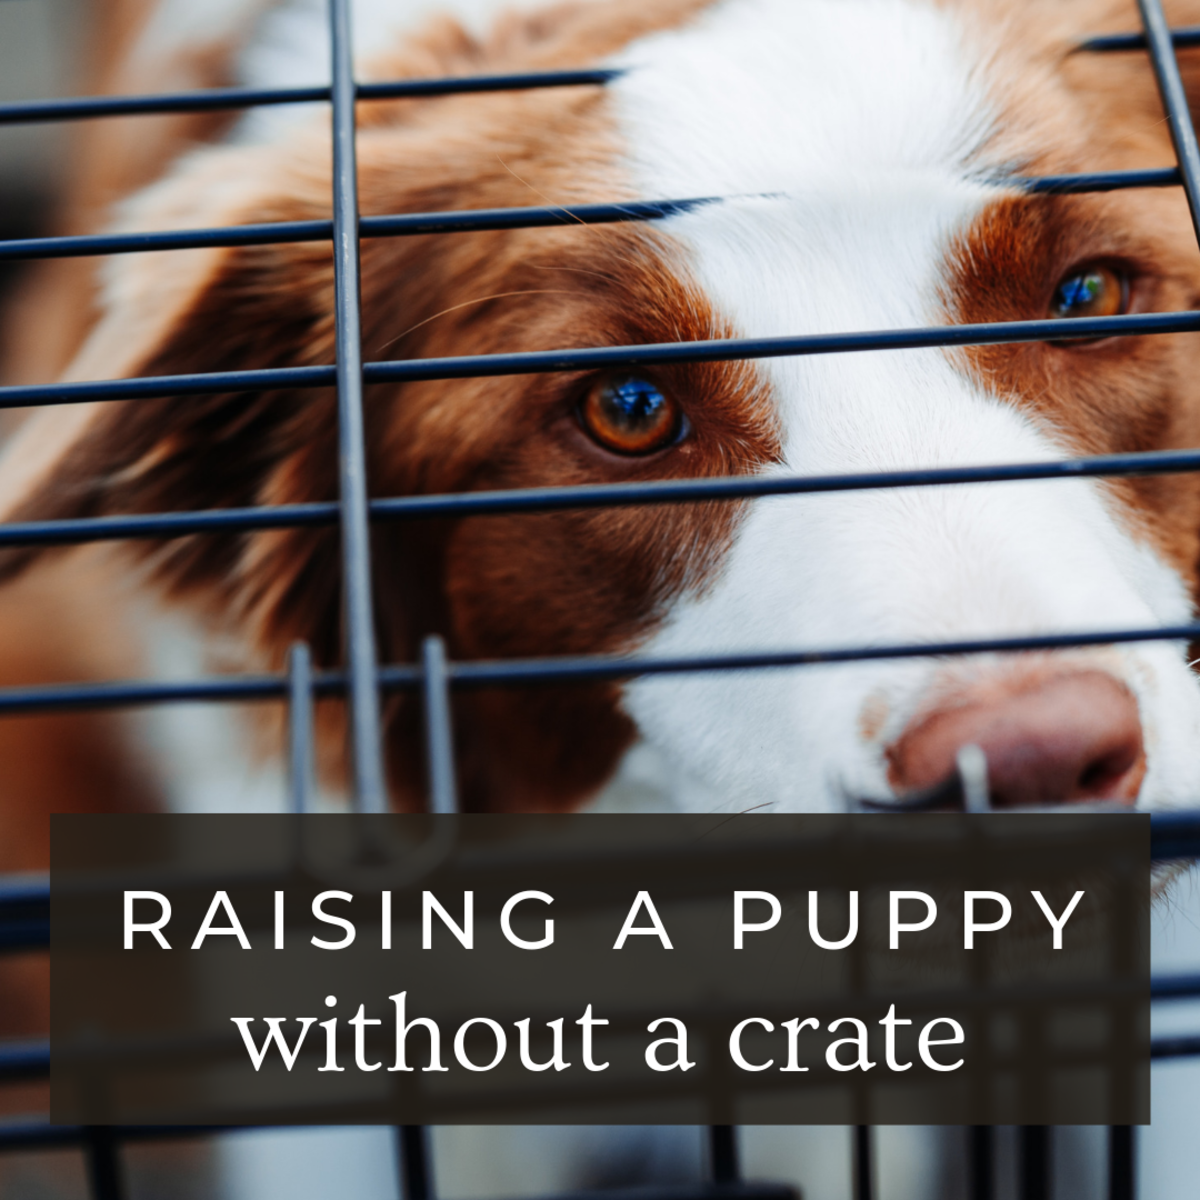 Raising Puppies Without a Crate